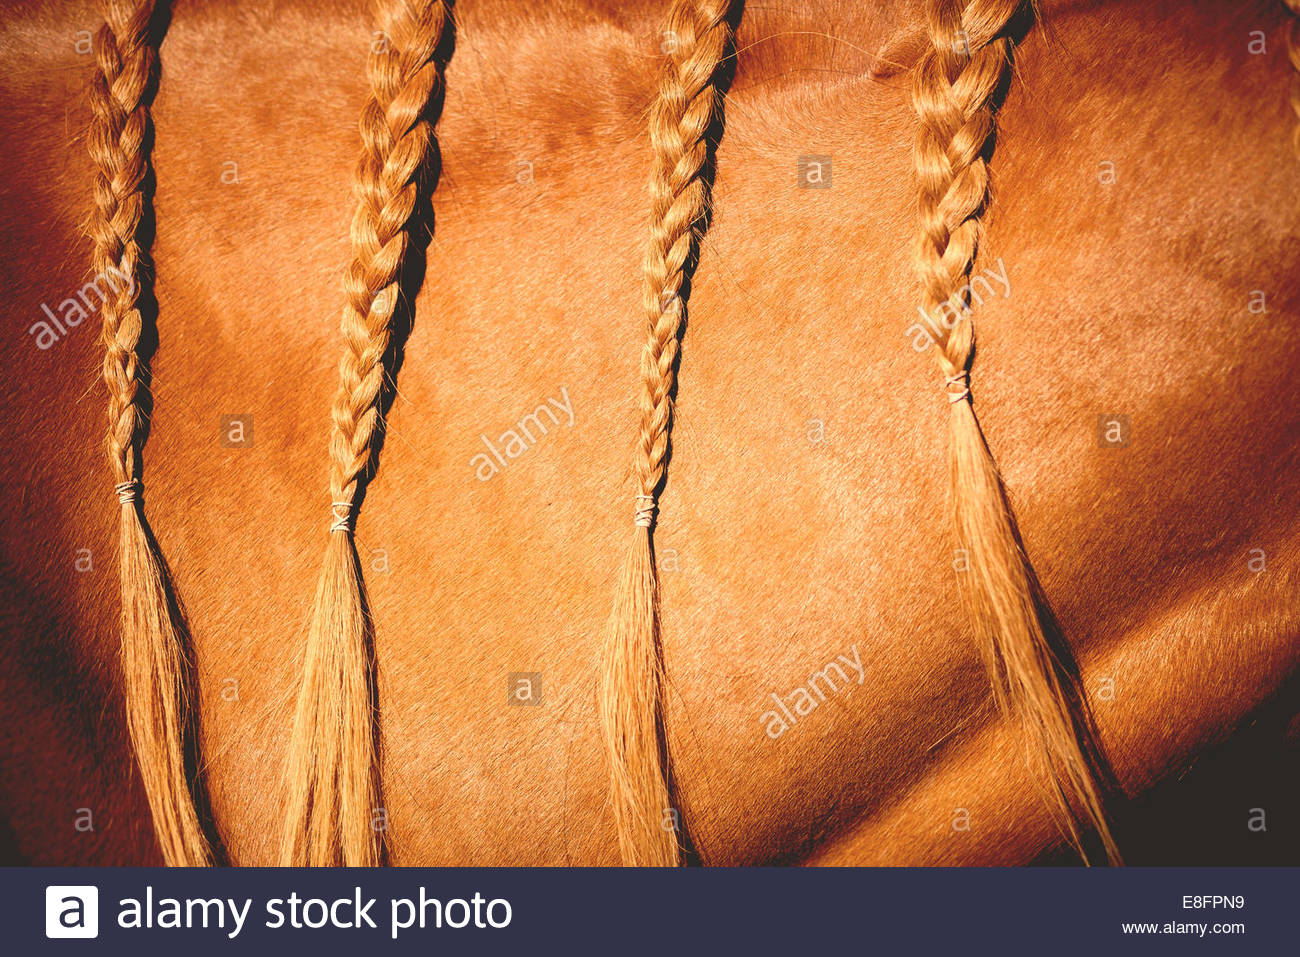 Close up of braided horse hair - Stock Image